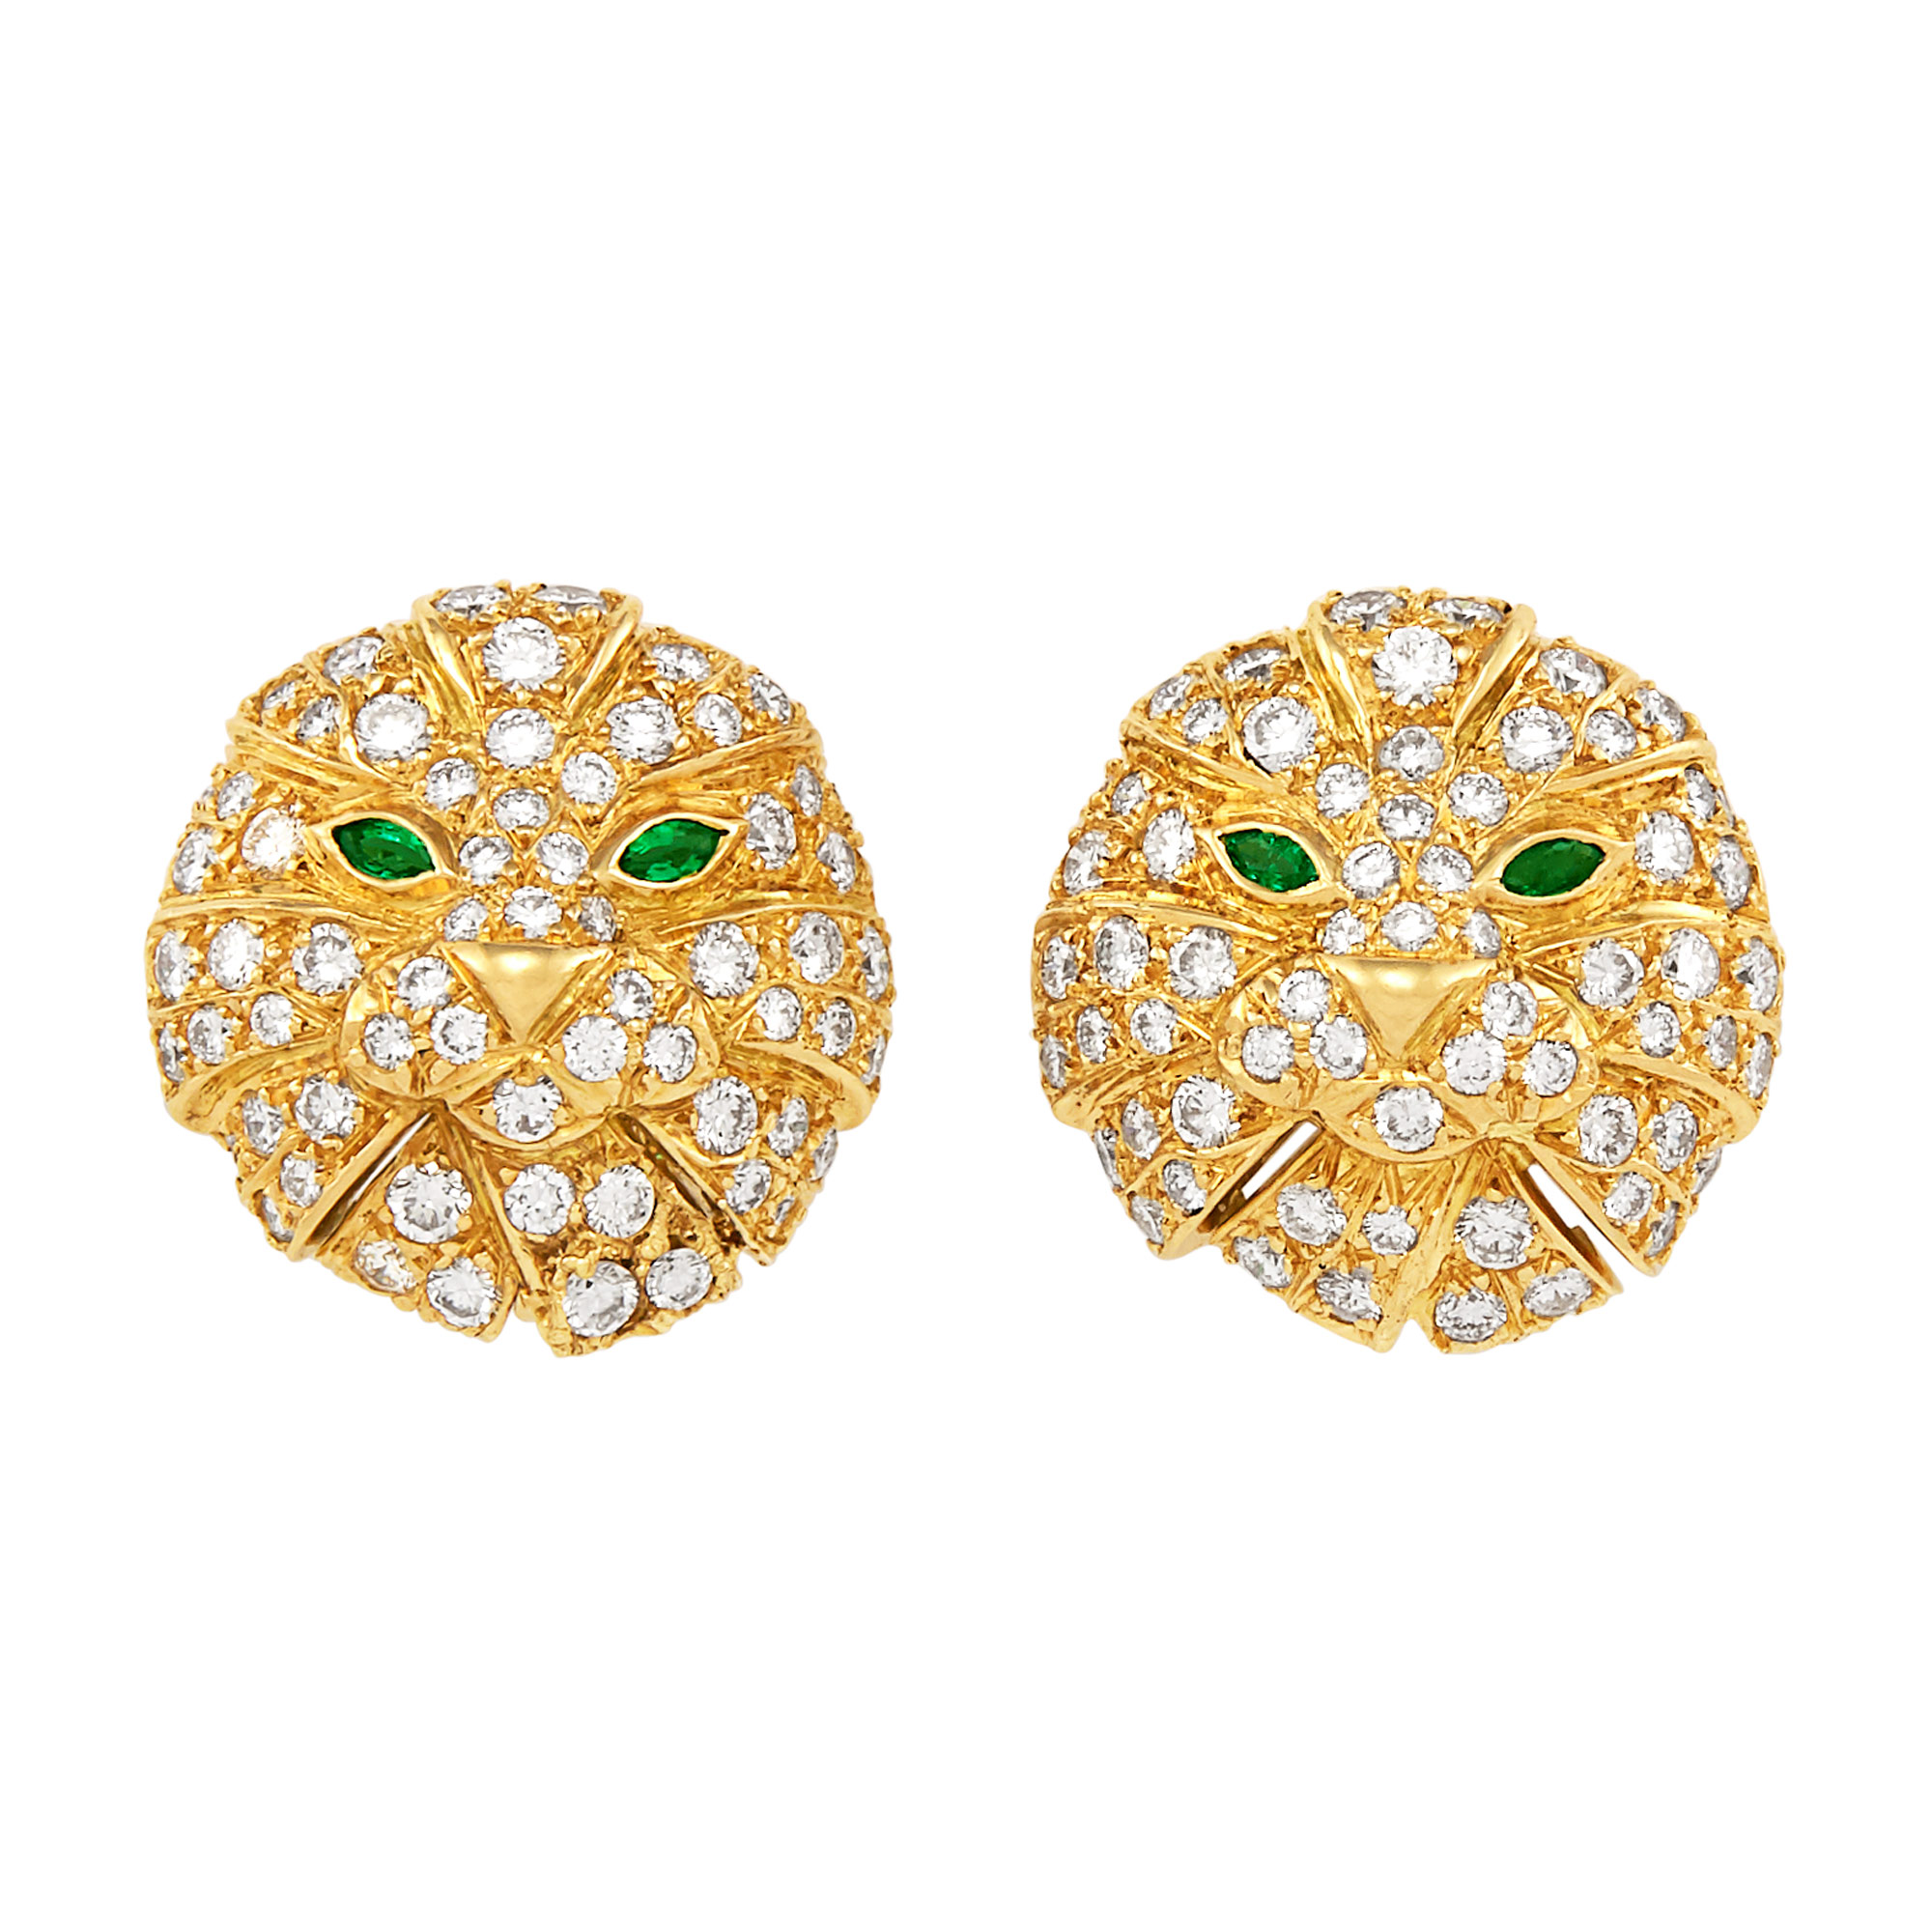 Lot image - Pair of Gold, Diamond and Emerald Lion Earclips, Boucheron, France